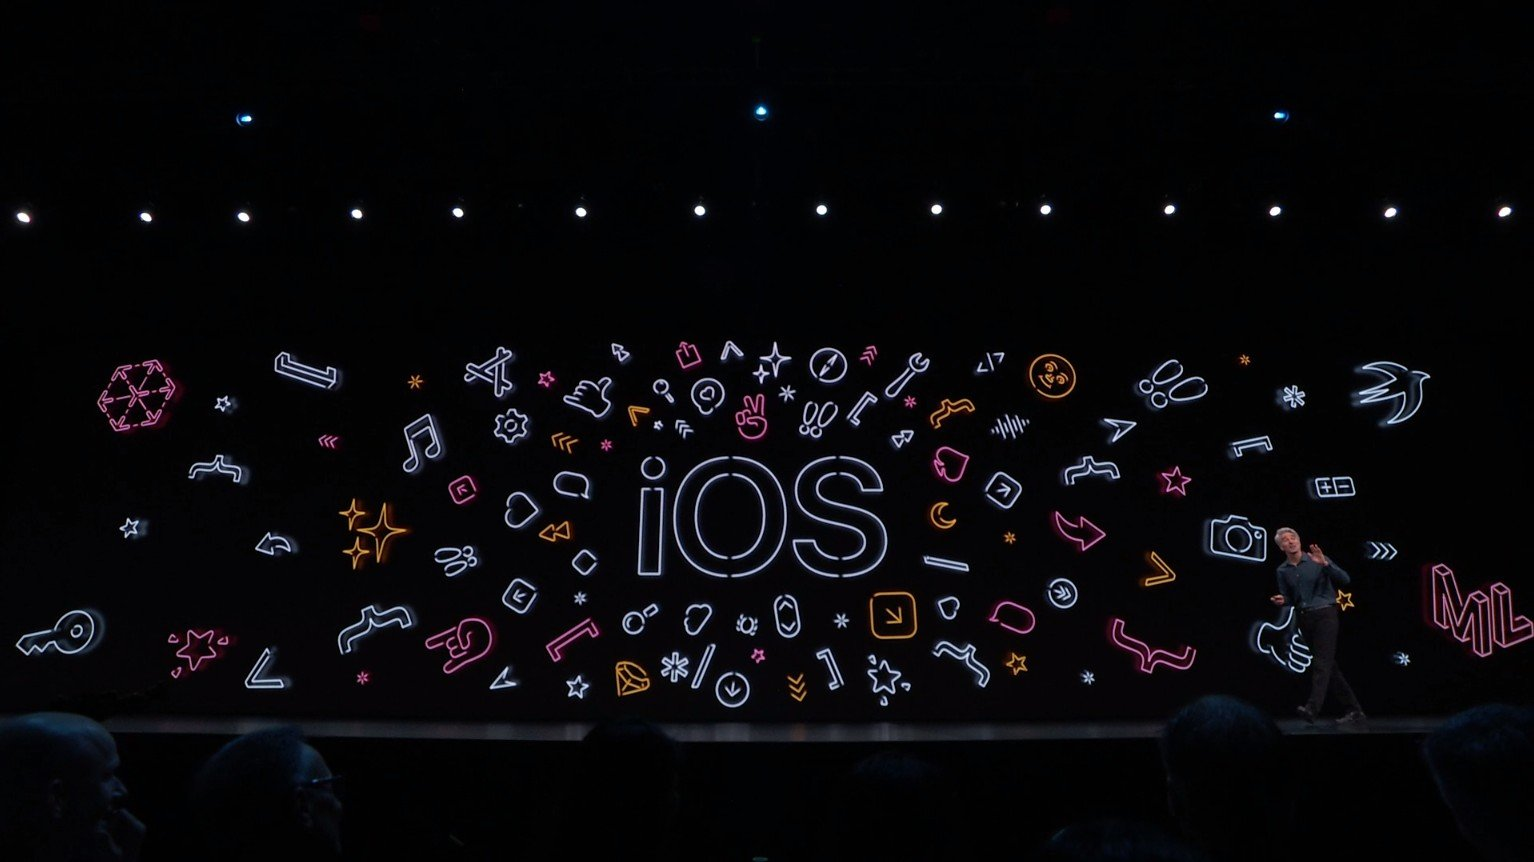 Apple fans will get some details about the upcoming release of iOS 13 at today's keynote.